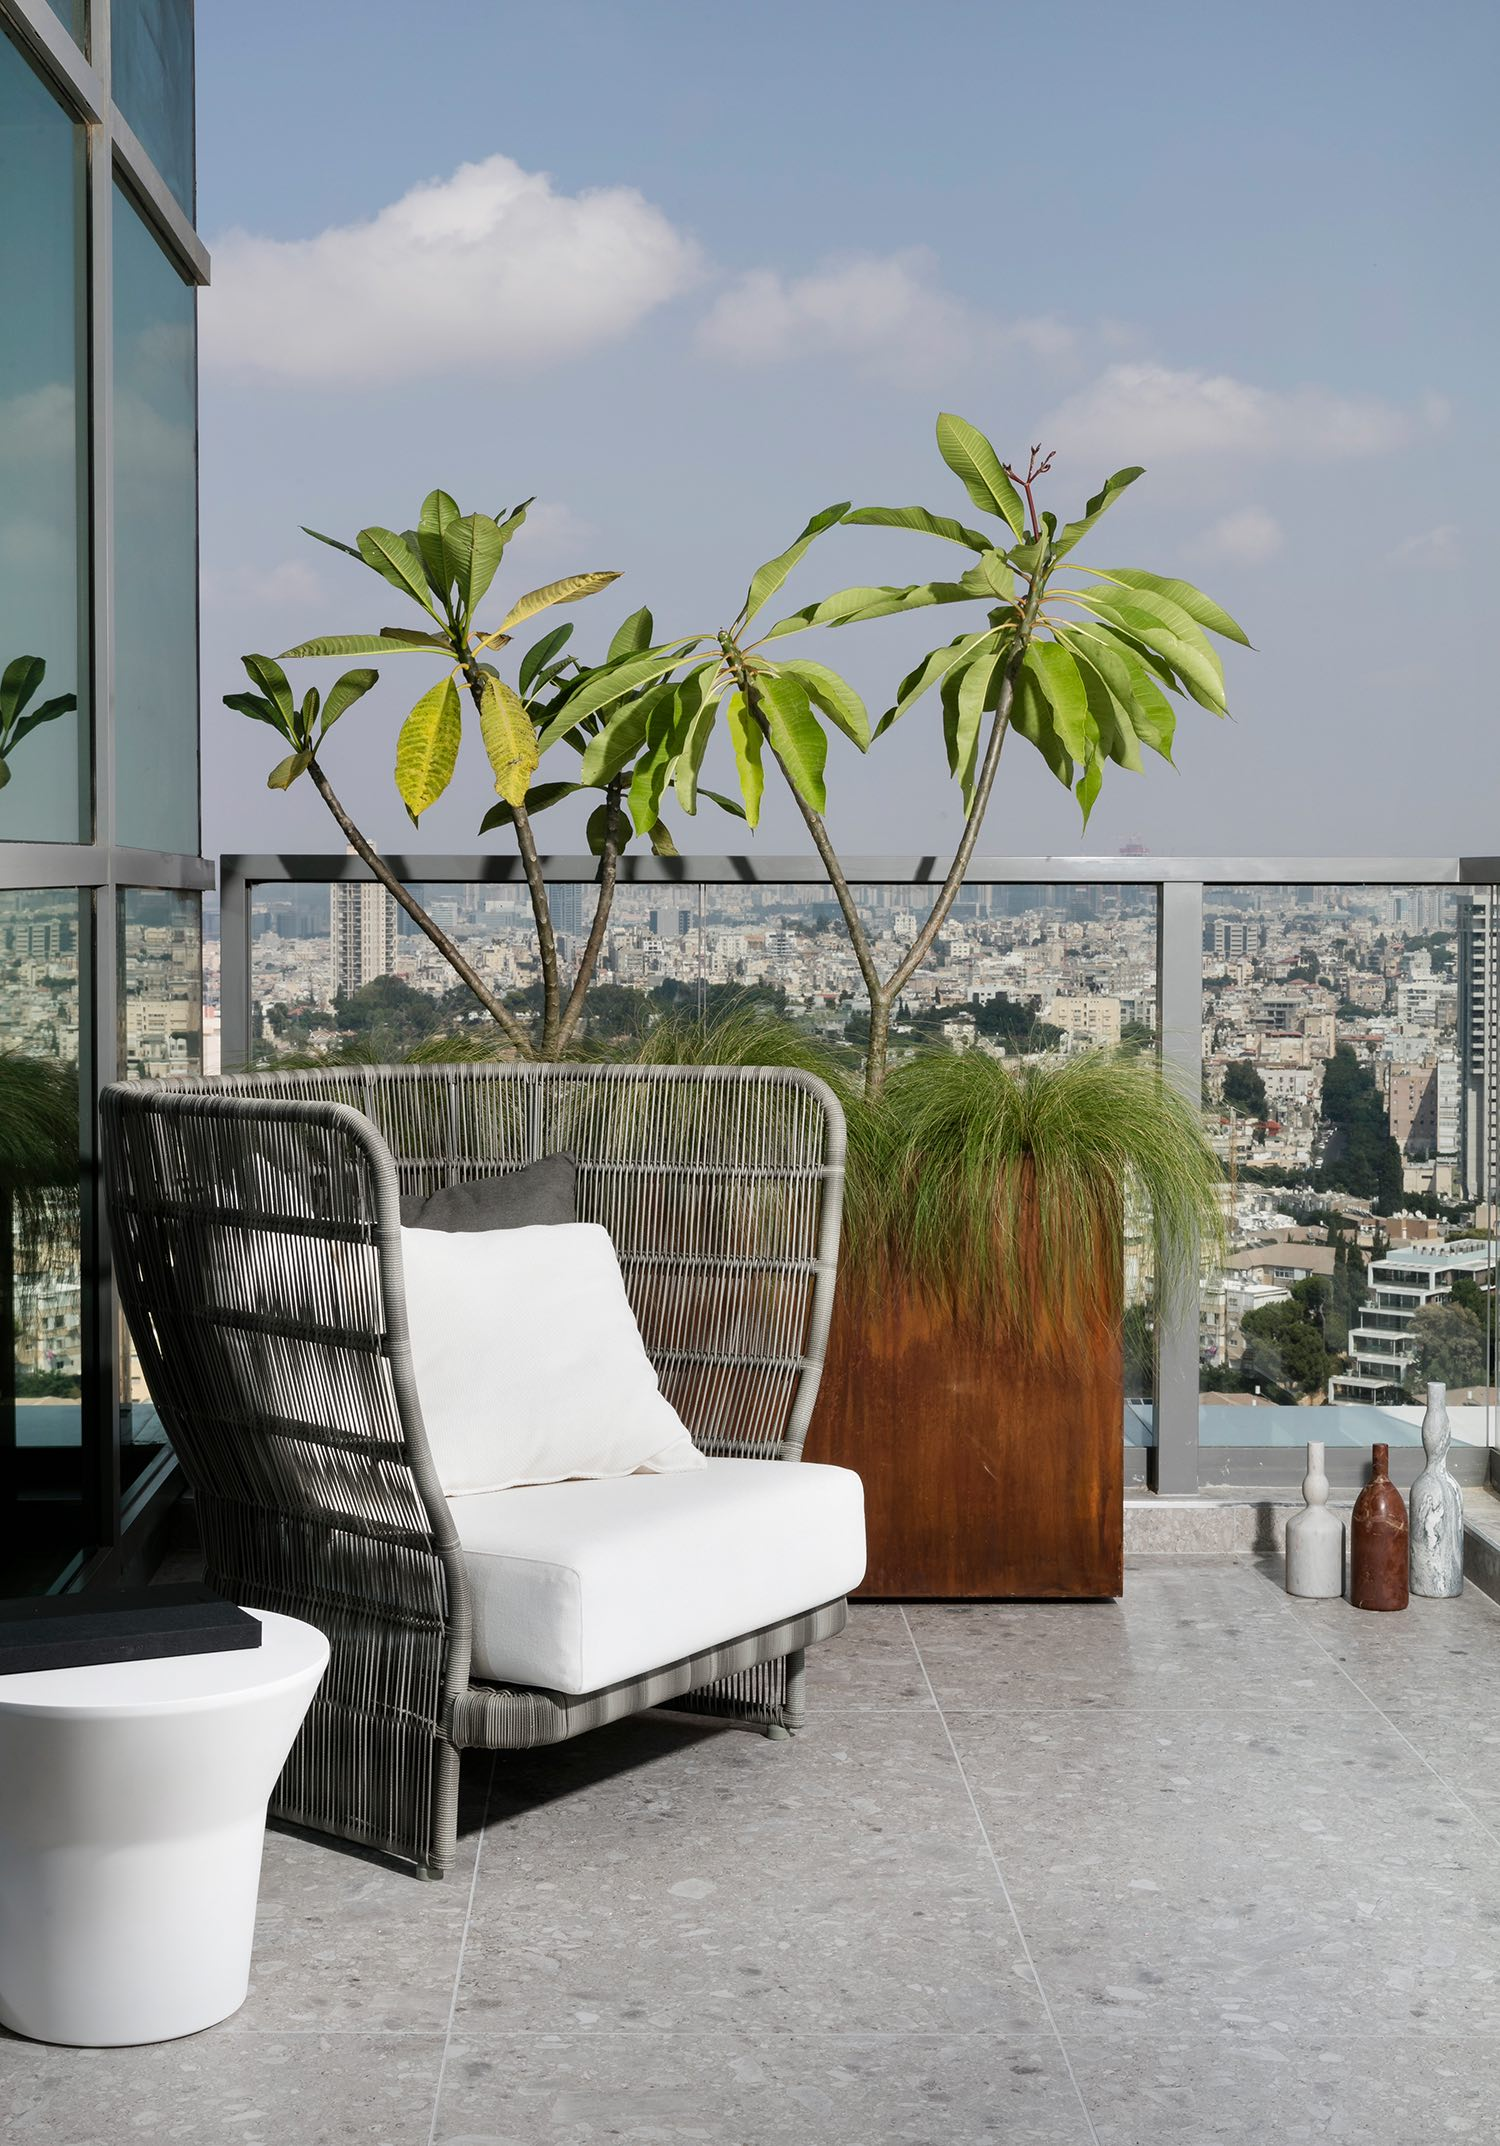 outdoor chair at balcony